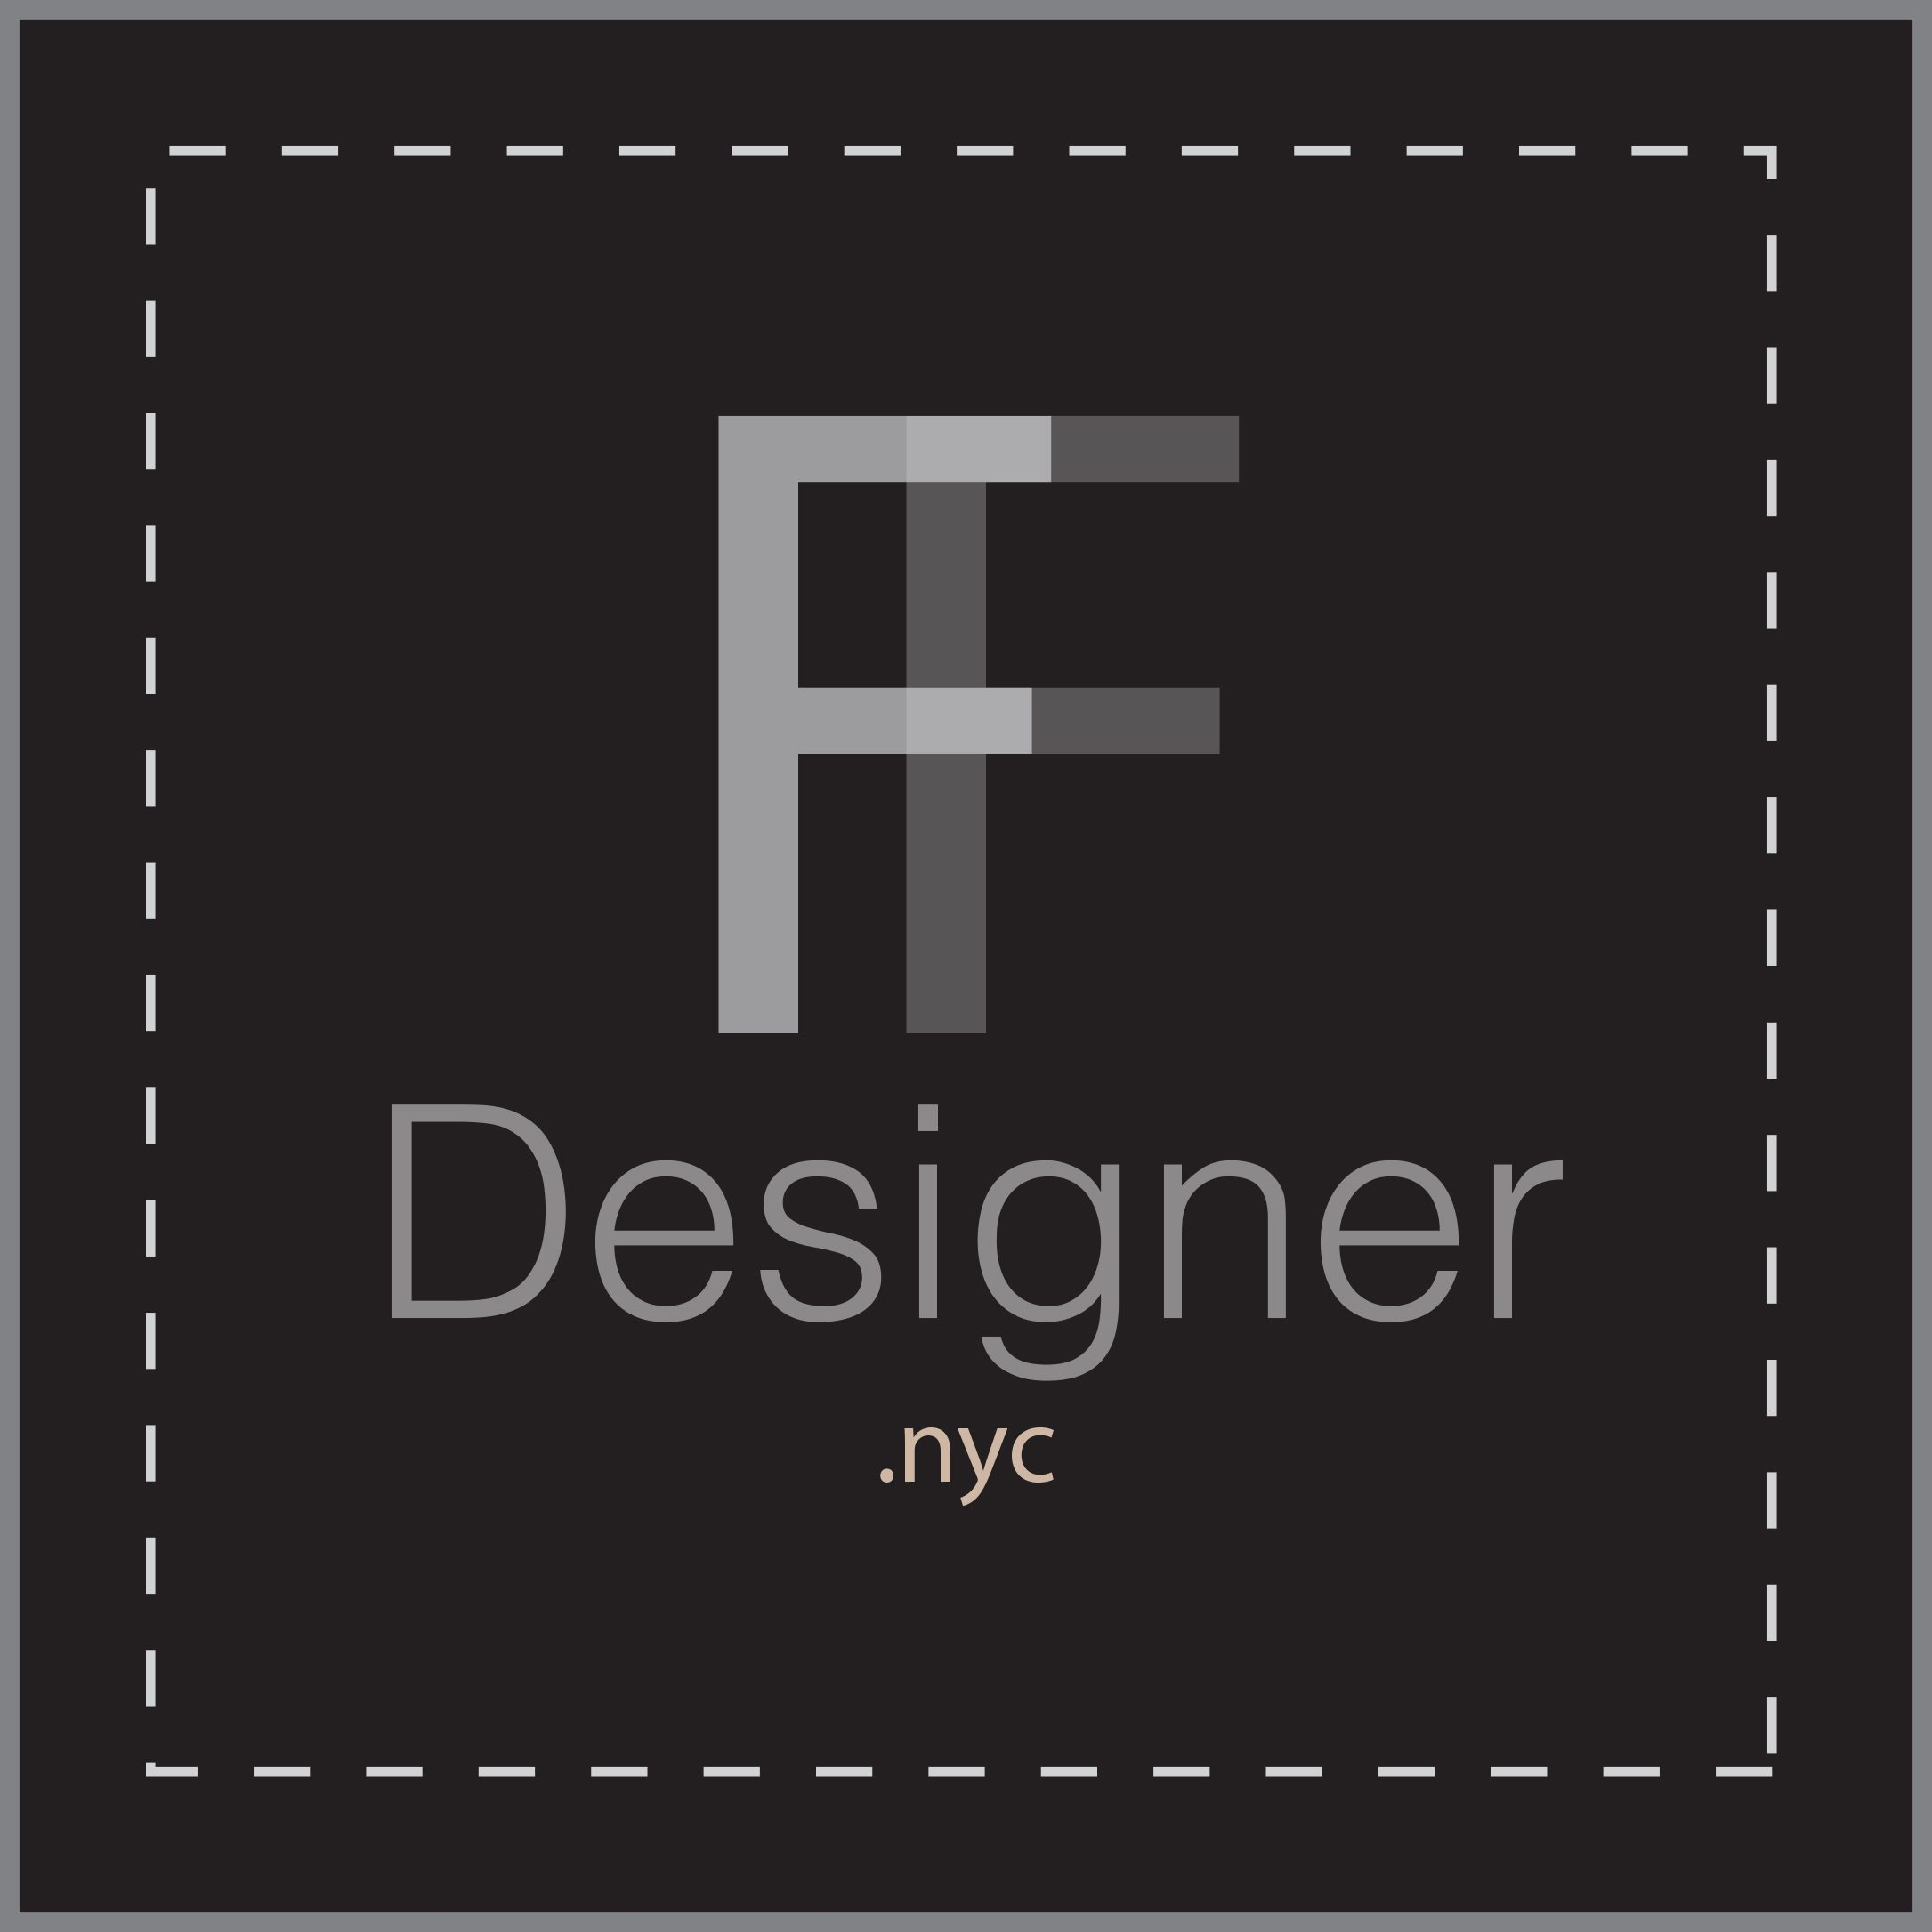 Freelance Fashion Designer Nyc Freelance Fashion Designer Services Fashion Freelance